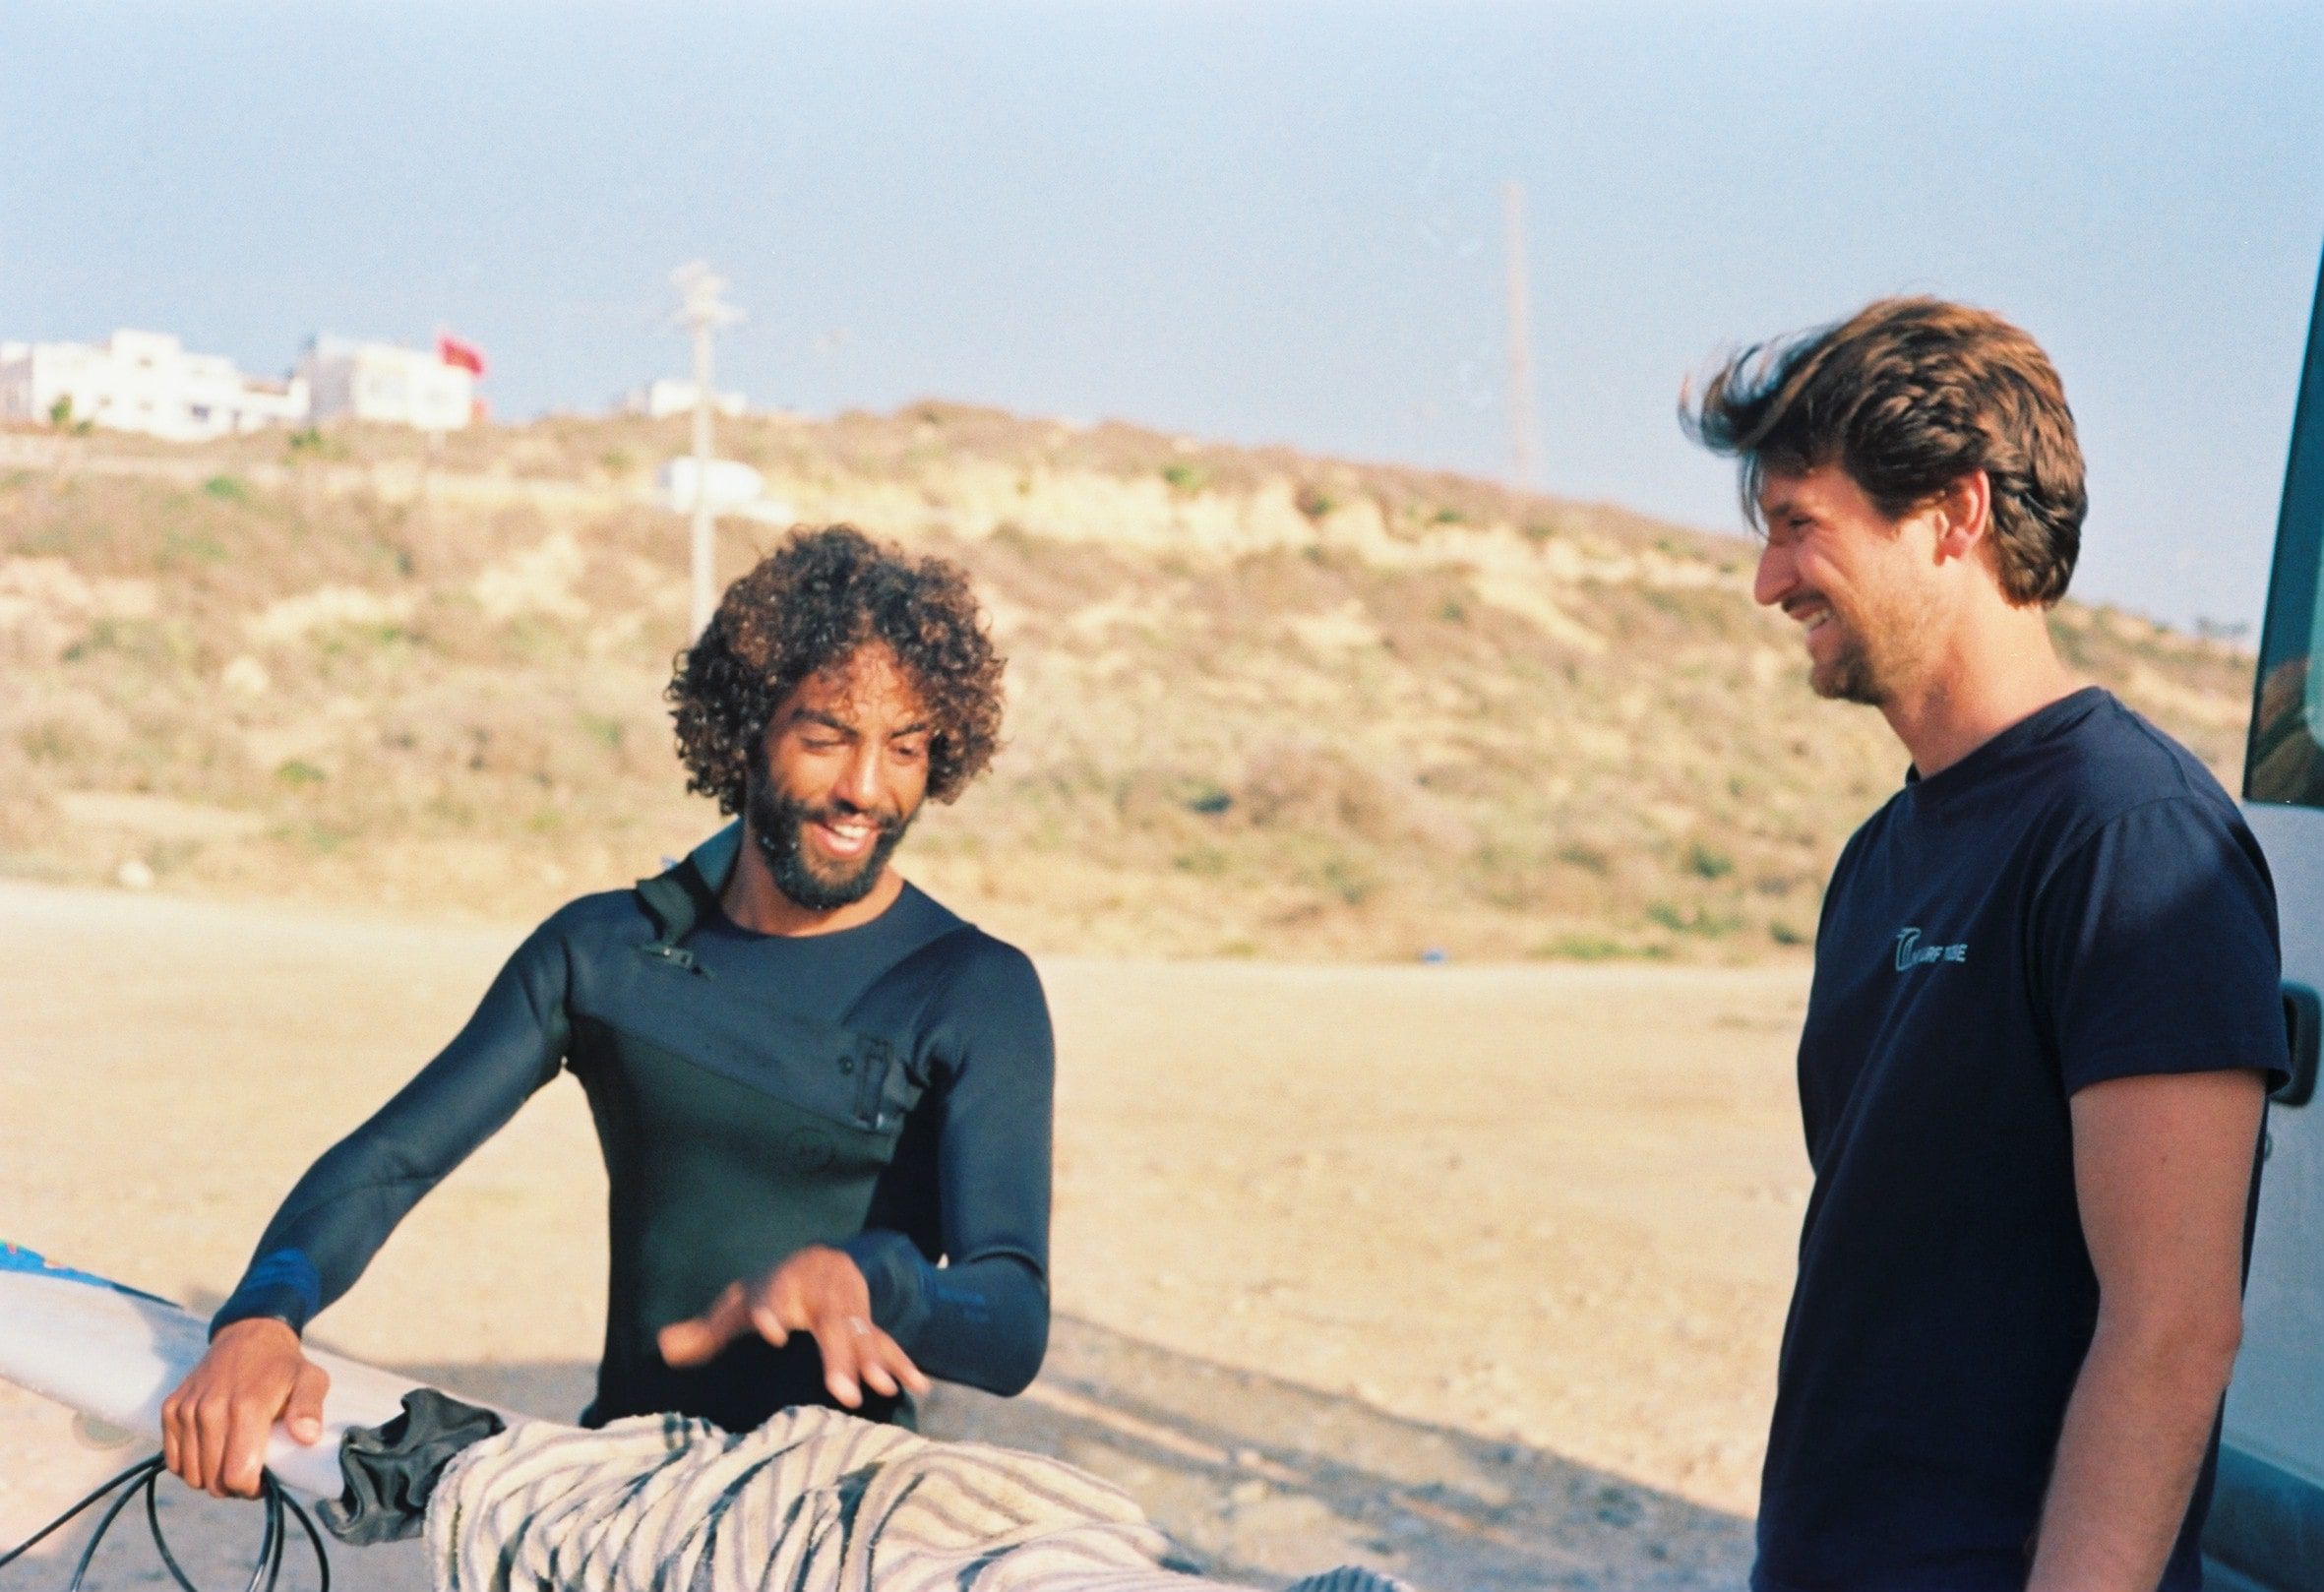 Moroccan Pro Surfer Redouane Regragui with Stefano from The Surf Tribe